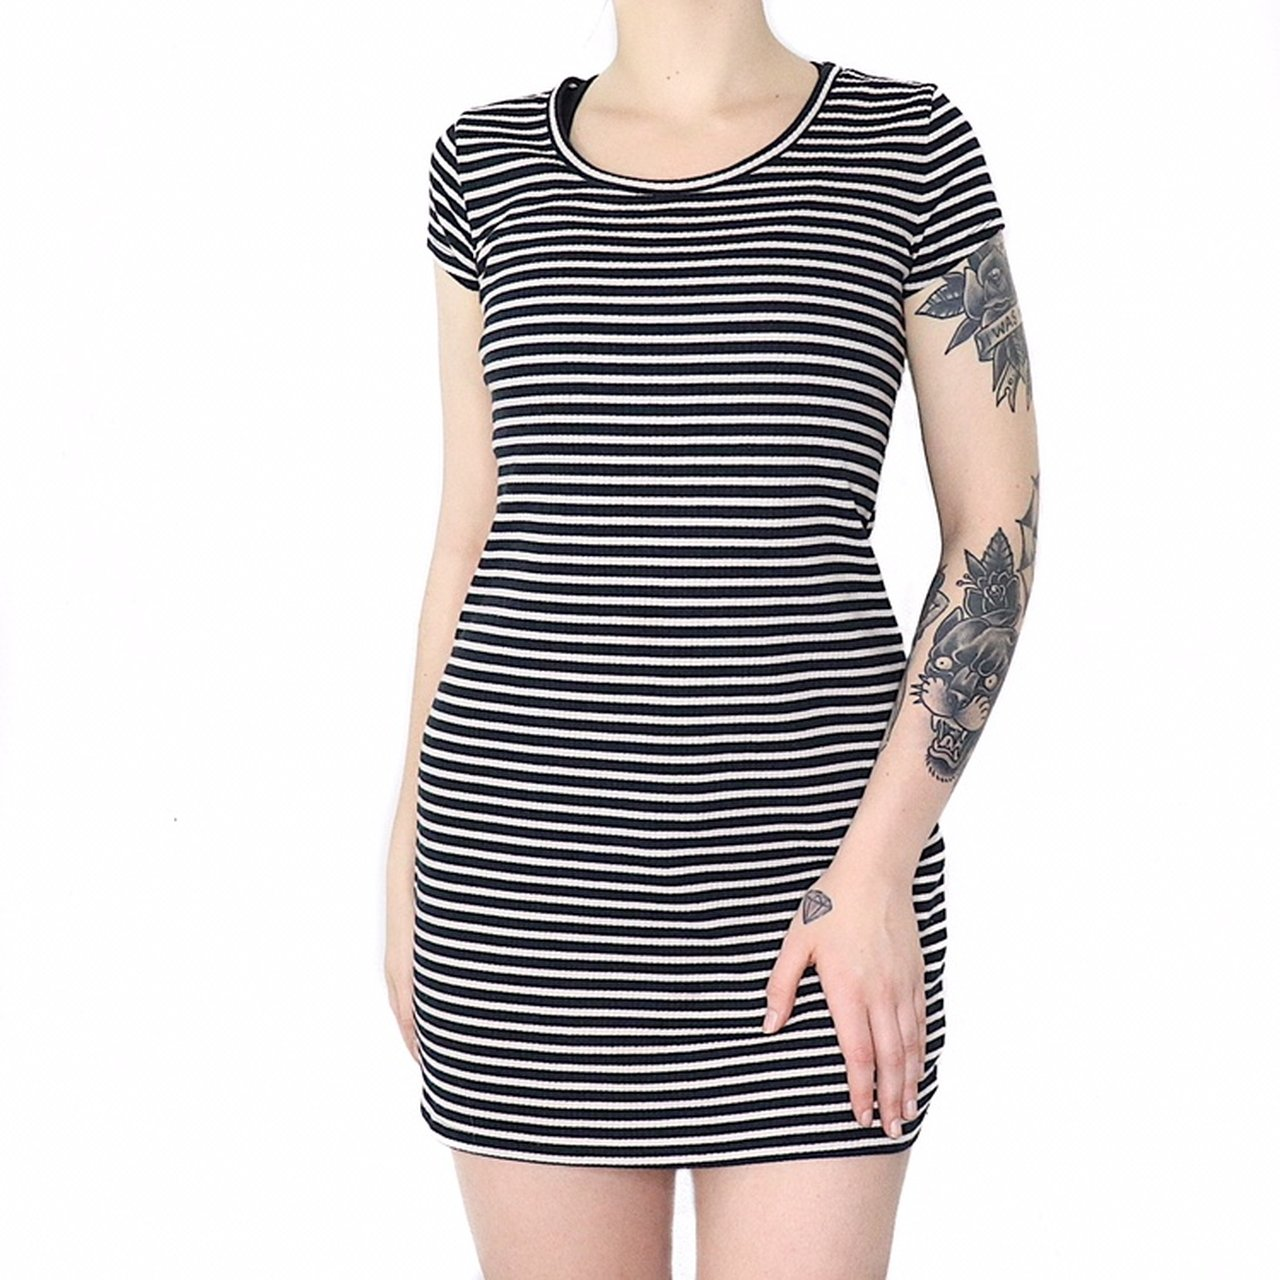 760cf142d5f9  gutter mouth. 6 days ago. United States. Navy and white striped T-shirt  dress.